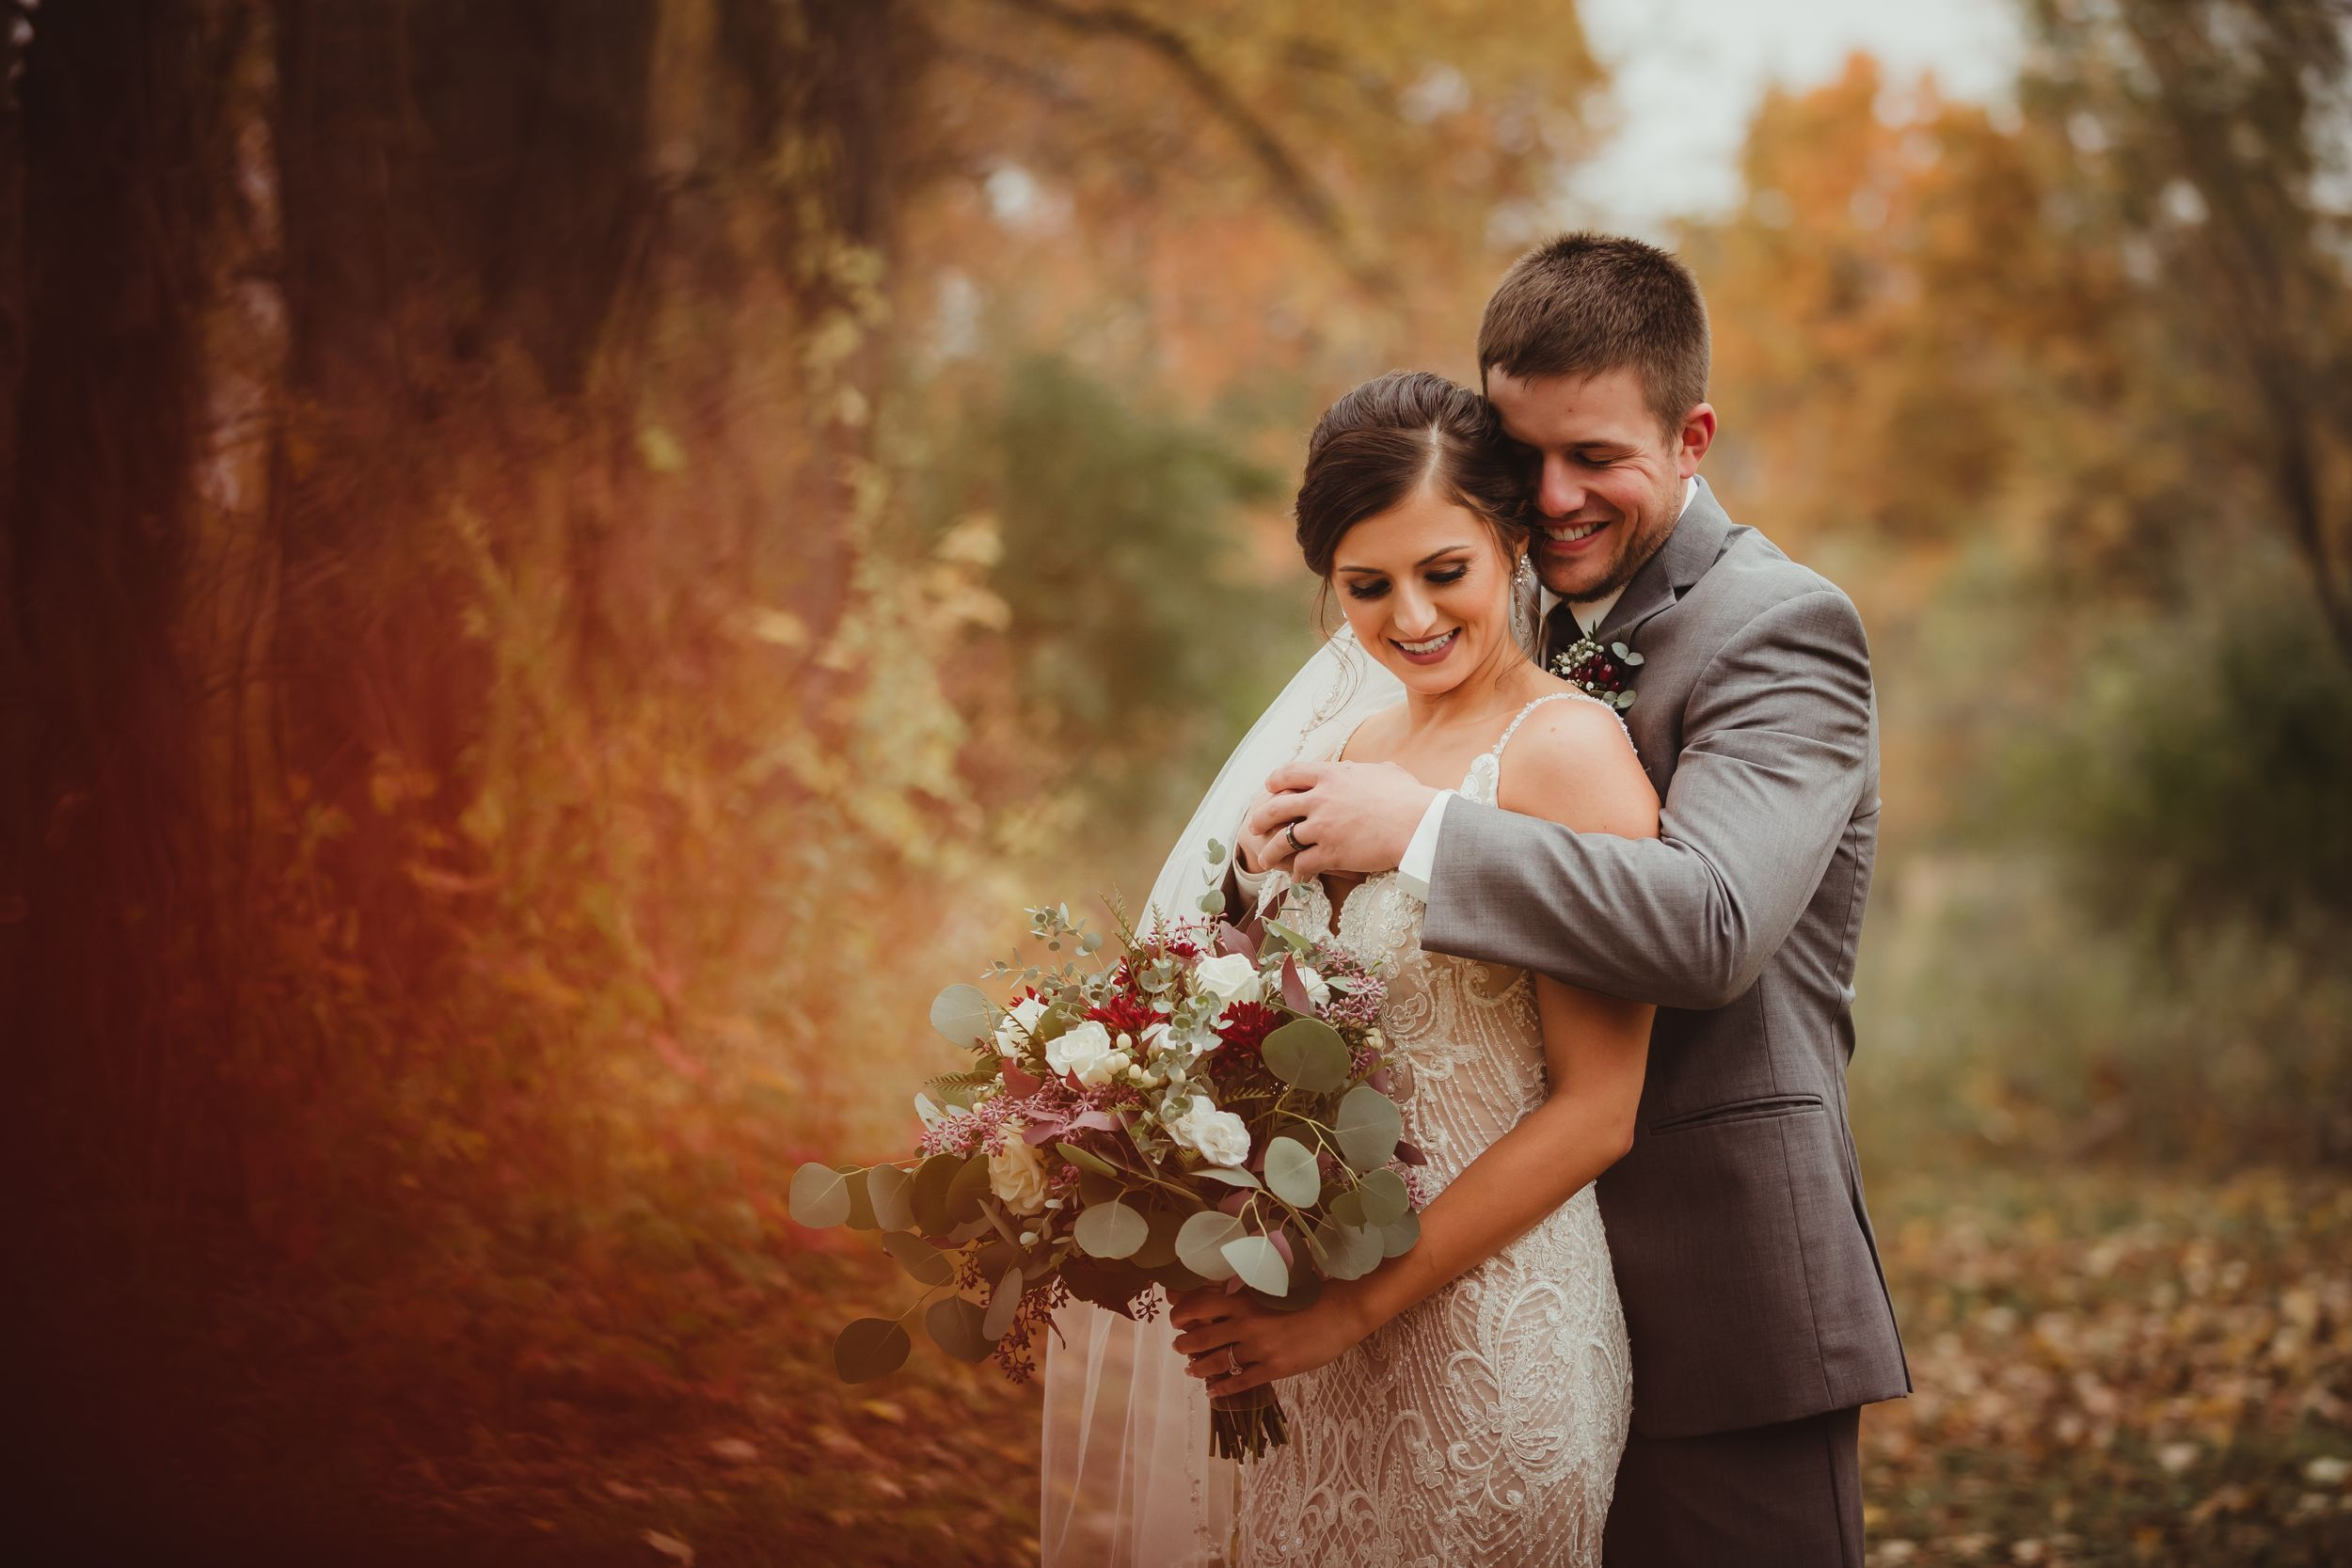 Groom standing behind bride hugging around her shoulders and chest while they smile. There is bright fall foliage.